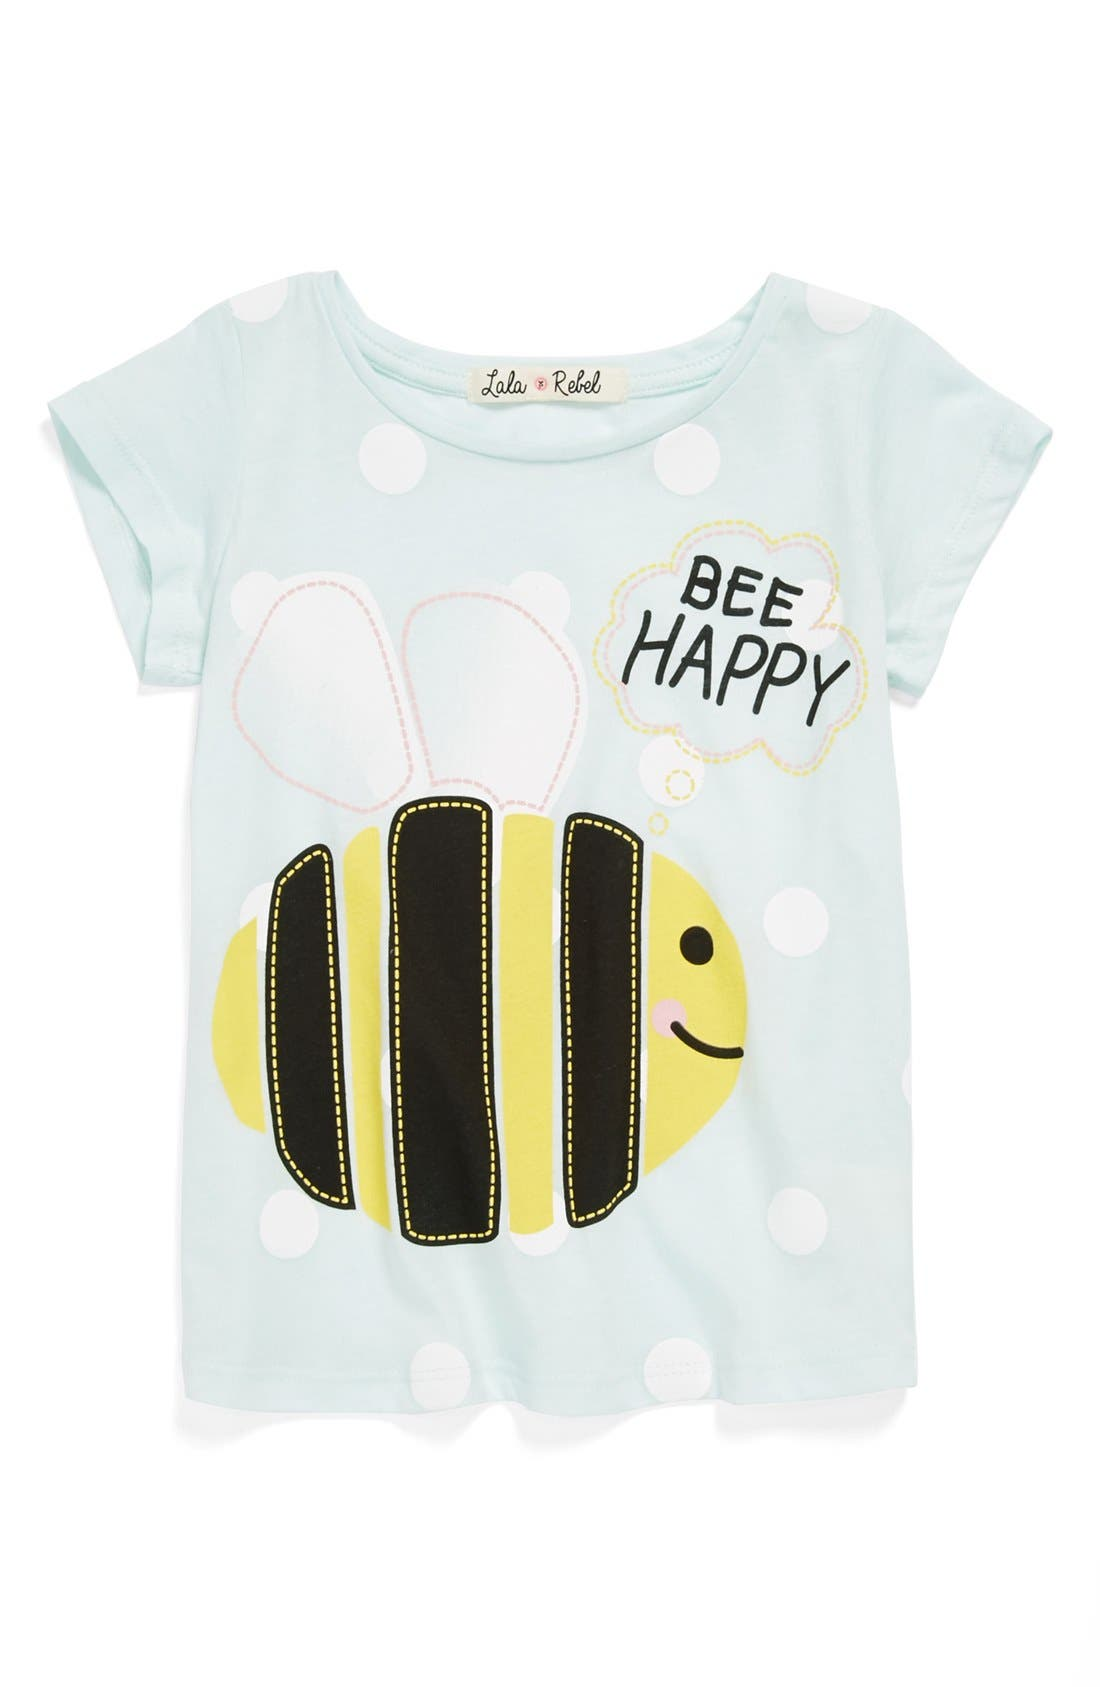 Alternate Image 1 Selected - Lala Rebel 'Bee Happy' Tee (Toddler Girls)